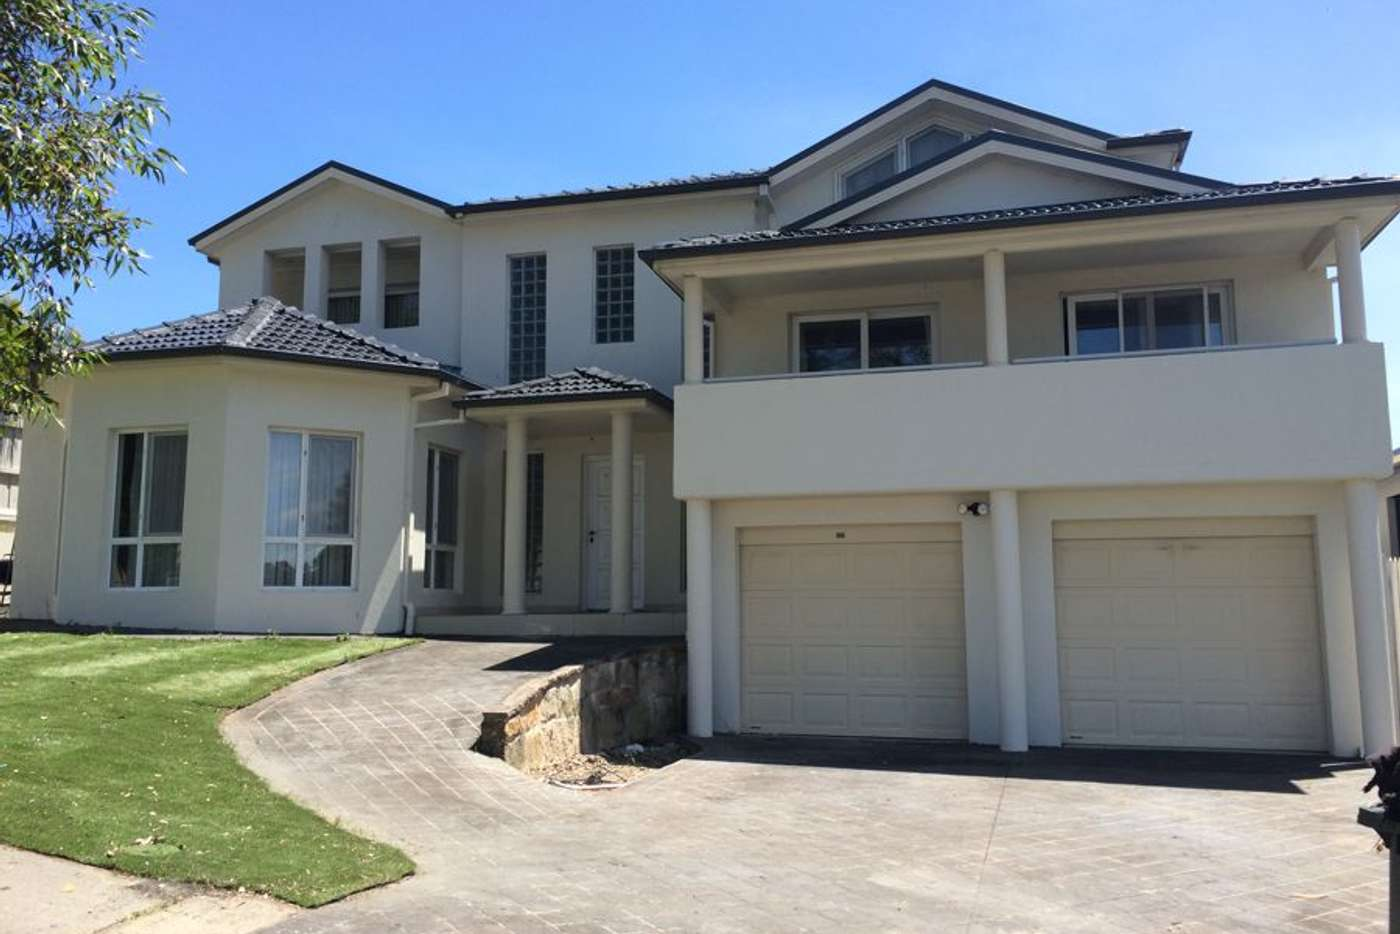 Main view of Homely house listing, 86 Milford Drive, Rouse Hill NSW 2155